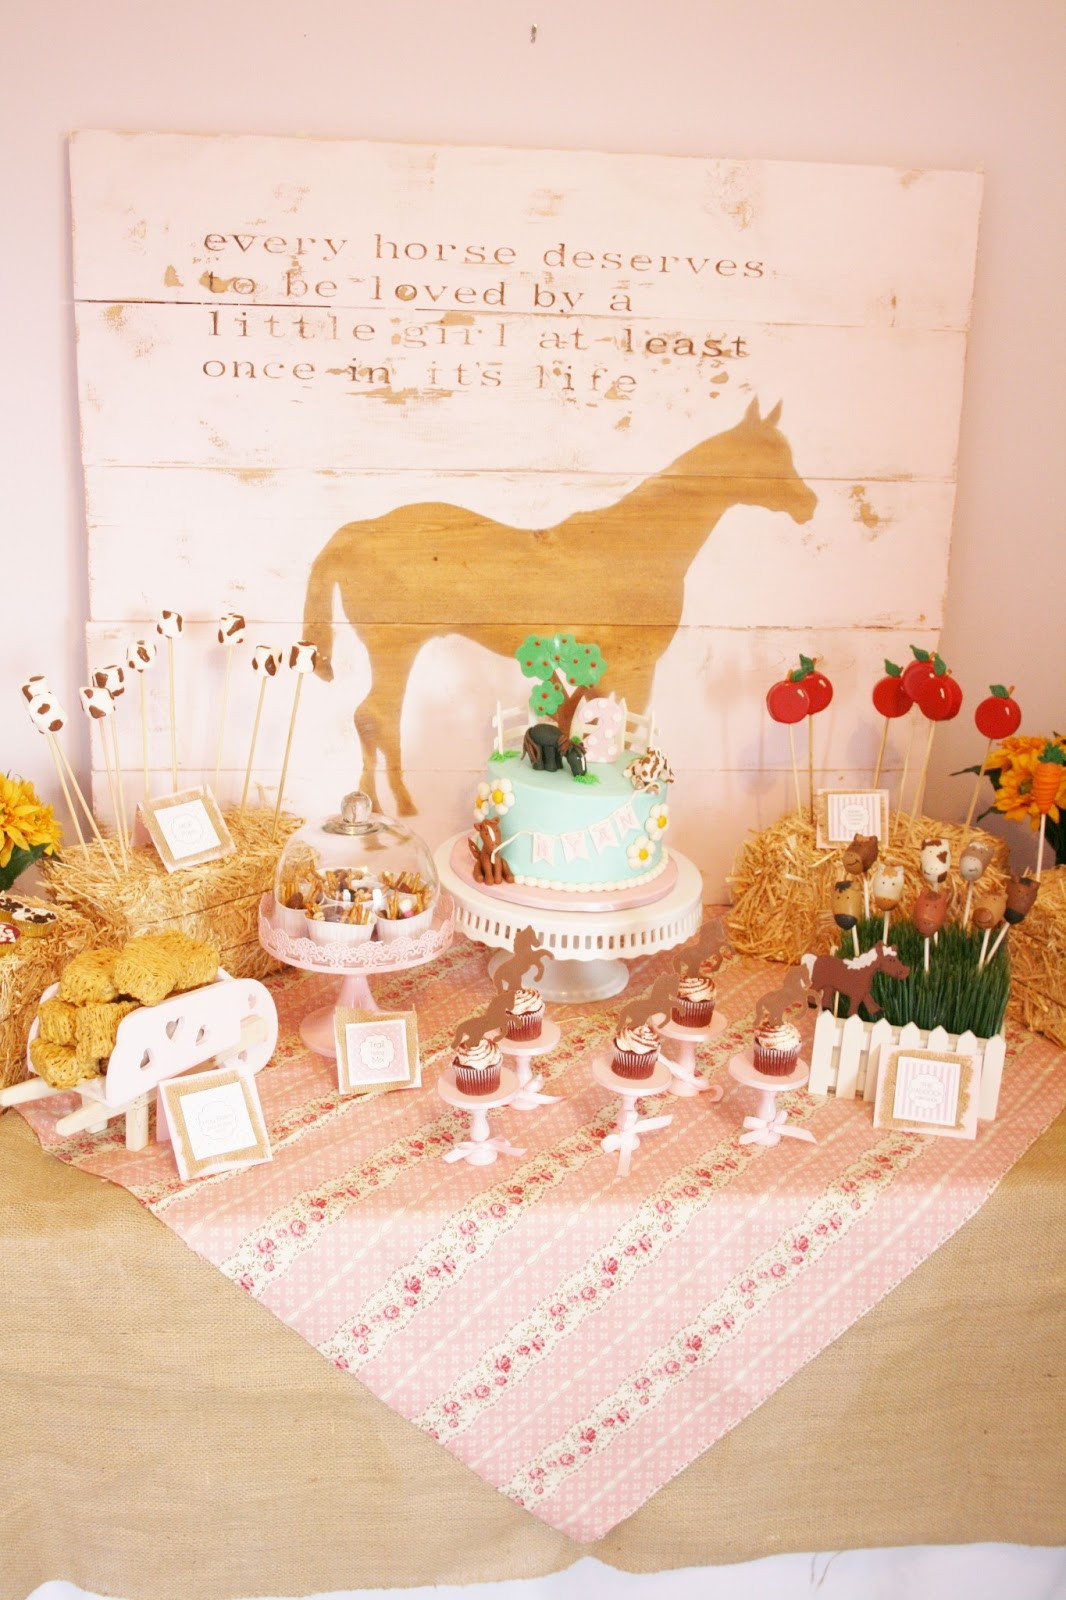 Best ideas about Horse Decorations For Birthday Party . Save or Pin And Everything Sweet Horse Themed 2nd Birthday Now.